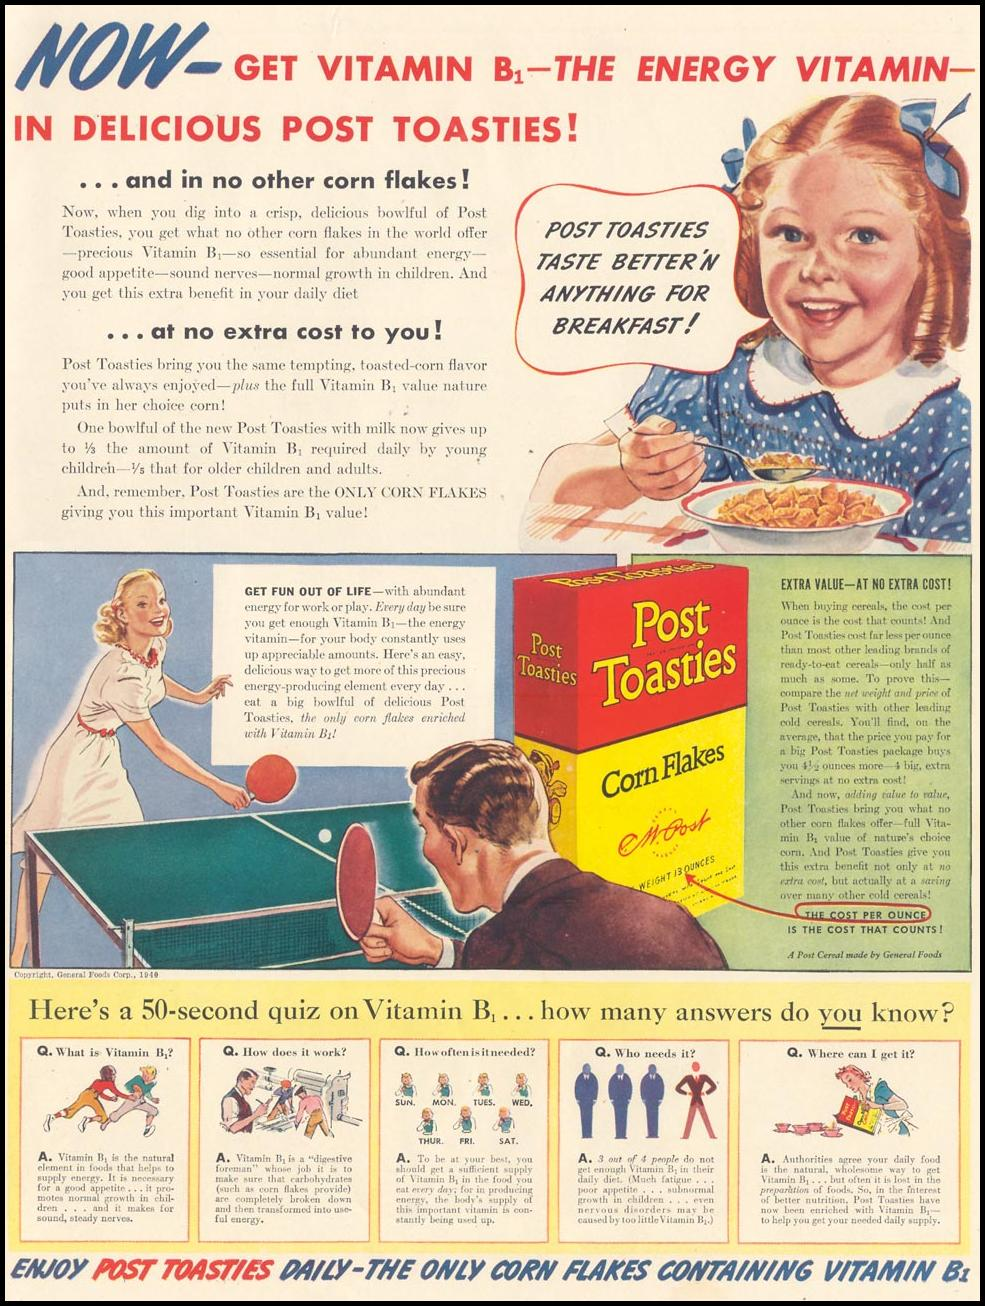 POST TOASTIES CORN FLAKES LIFE 09/30/1940